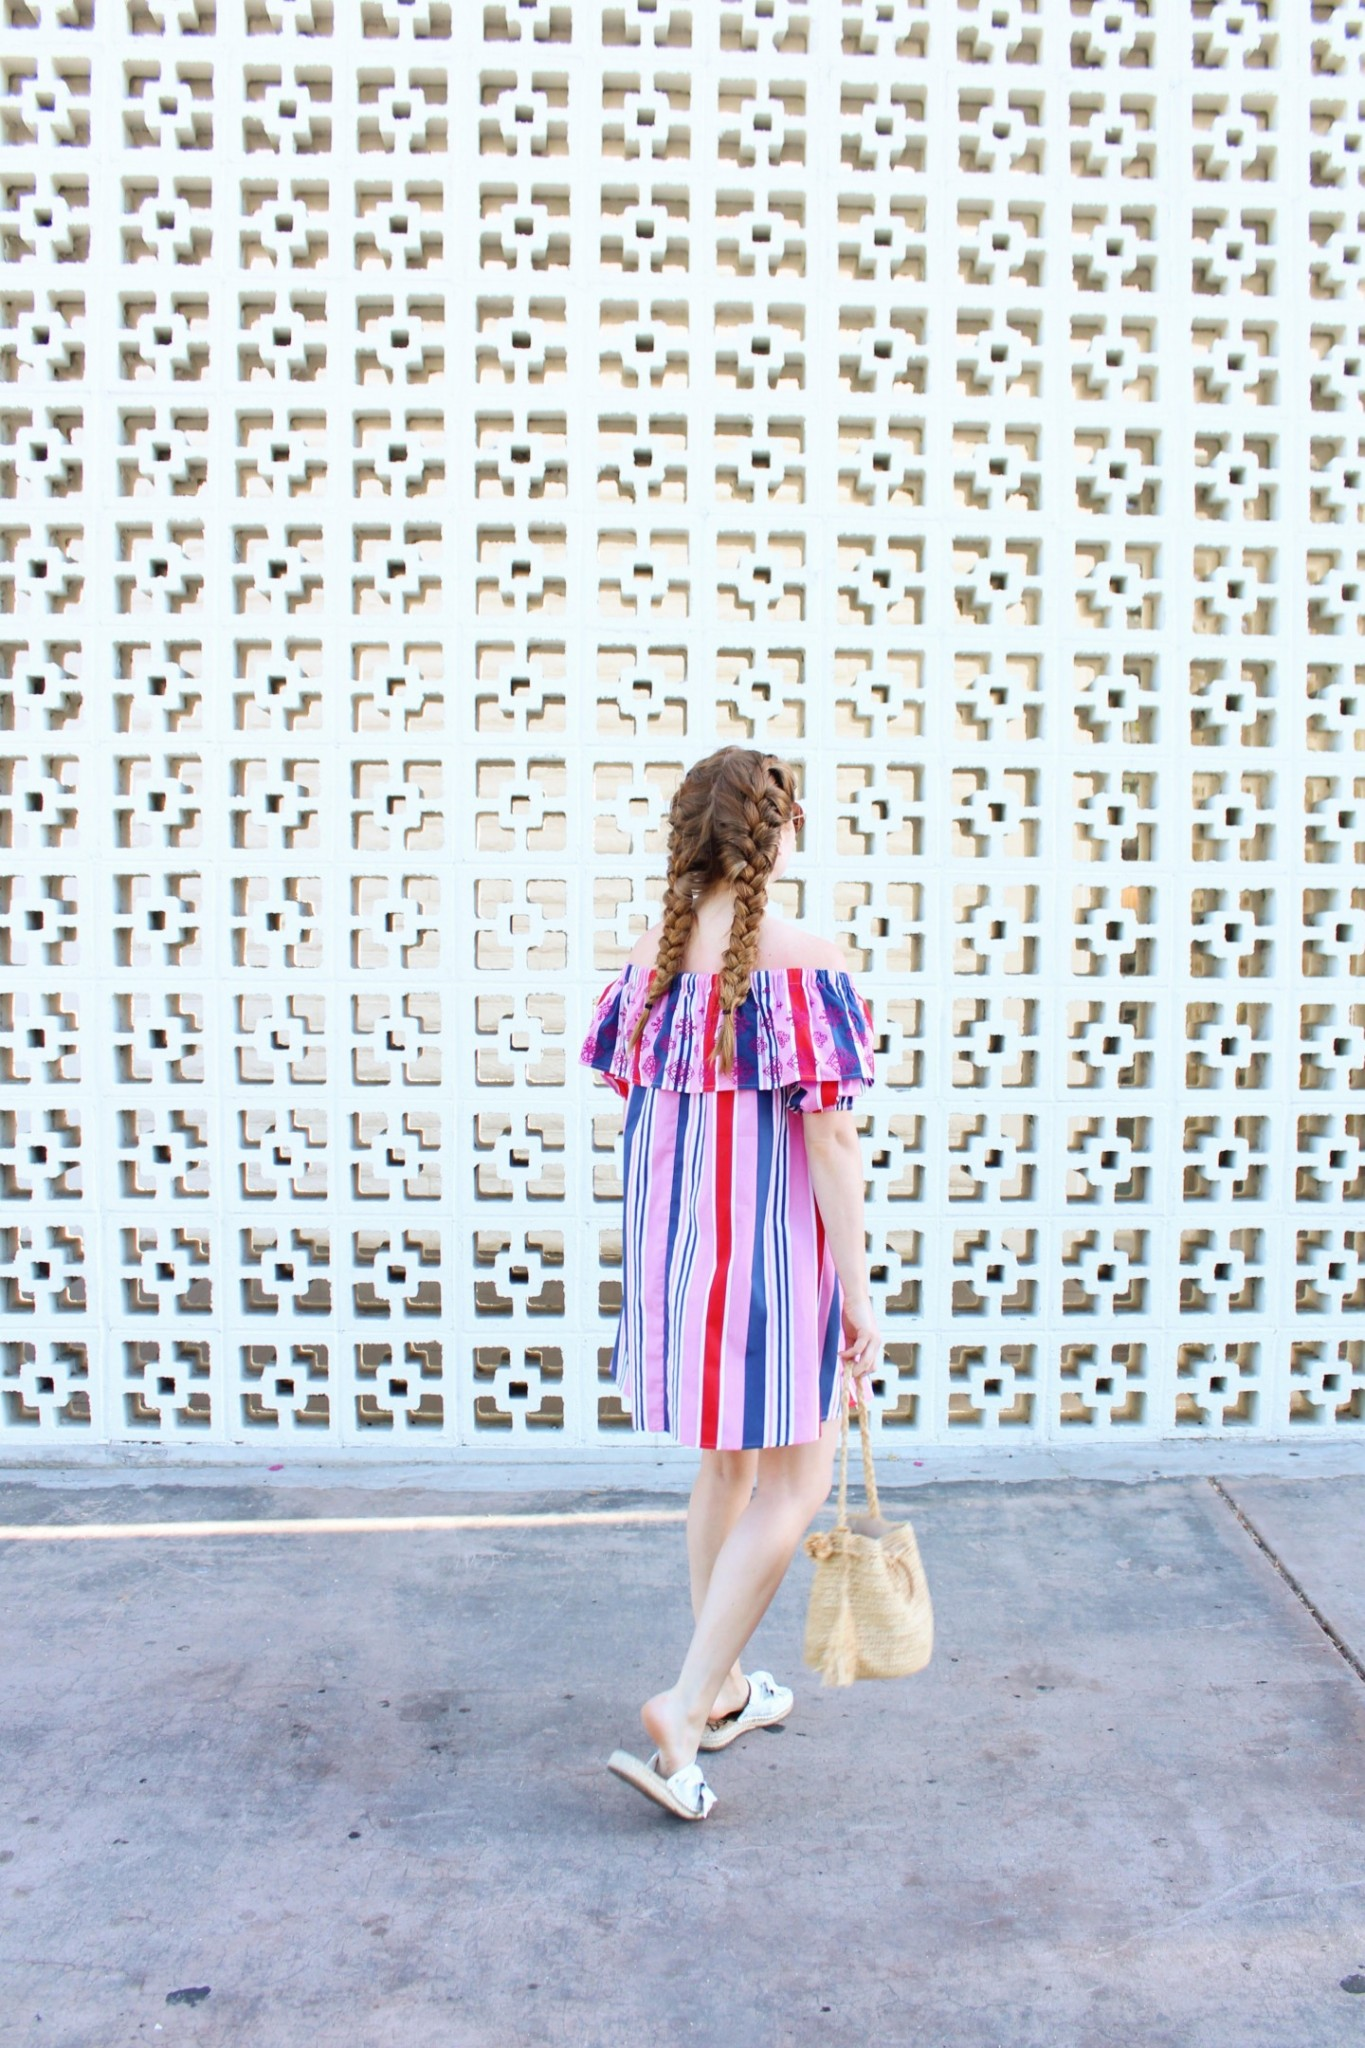 Lifestyle blogger Mollie Sheperdson shares a look styled at The Parker hotel in Palm Springs